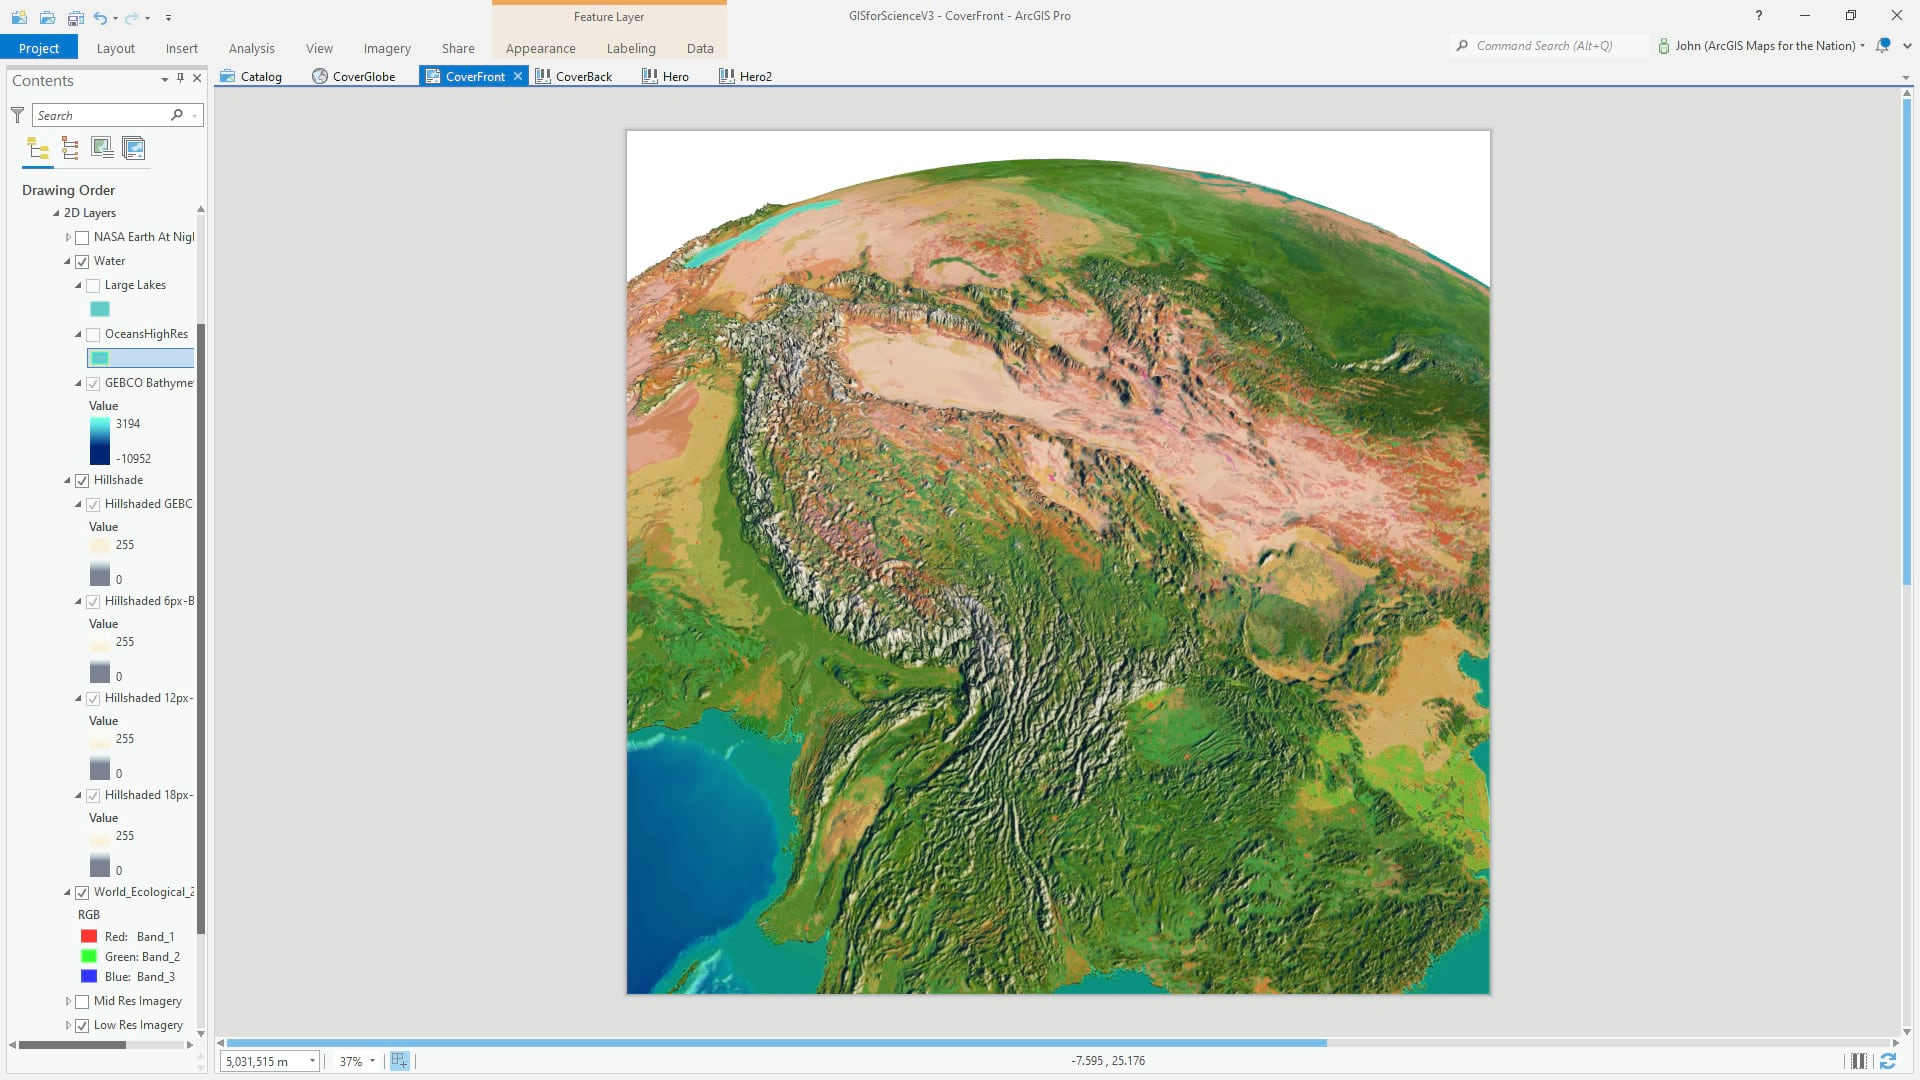 ArcGIS Pro 3D global scene with GEBCO bathymetry.